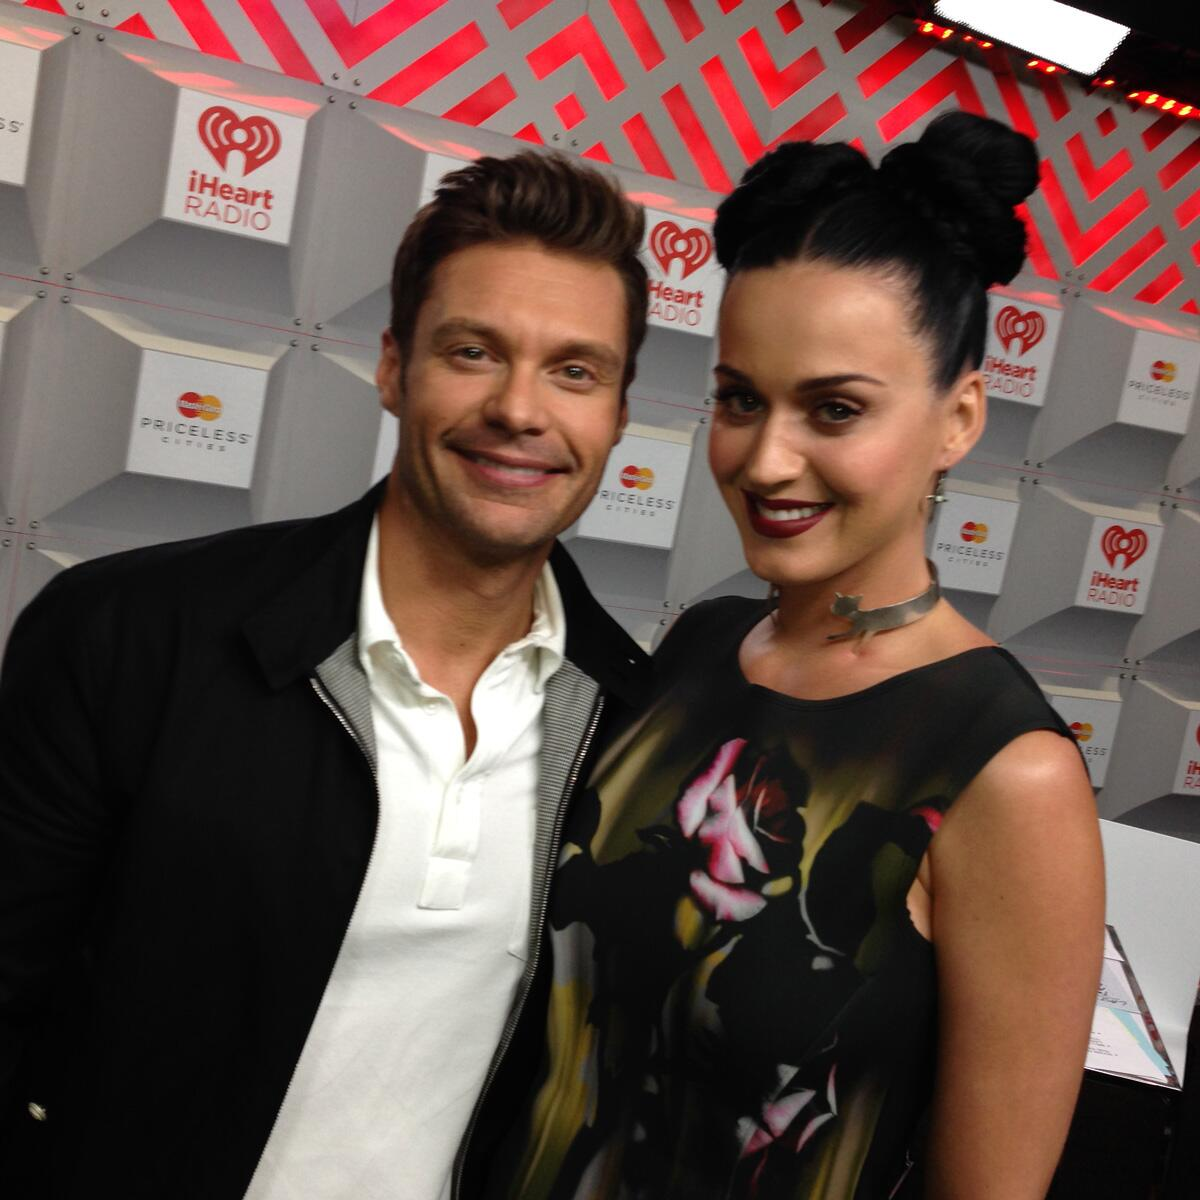 RT @RyanSeacrest: And that's a wrap on #iHeartRadio night 1! See you tomorrow? After party in @KatyPerry's room (byob) http://t.co/ttohm5PkVb